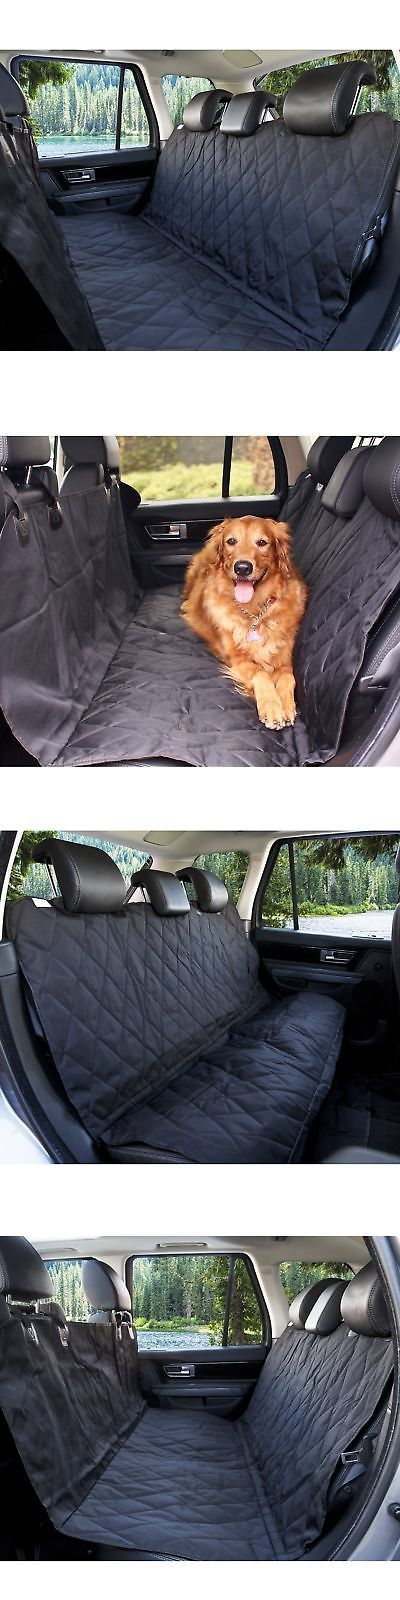 Car Seat Covers 117426: Barksbar Luxury Pet Car Seat Cover With Seat Anchors For Cars Trucks And Suv ... -> BUY IT NOW ONLY: $30.19 on eBay!